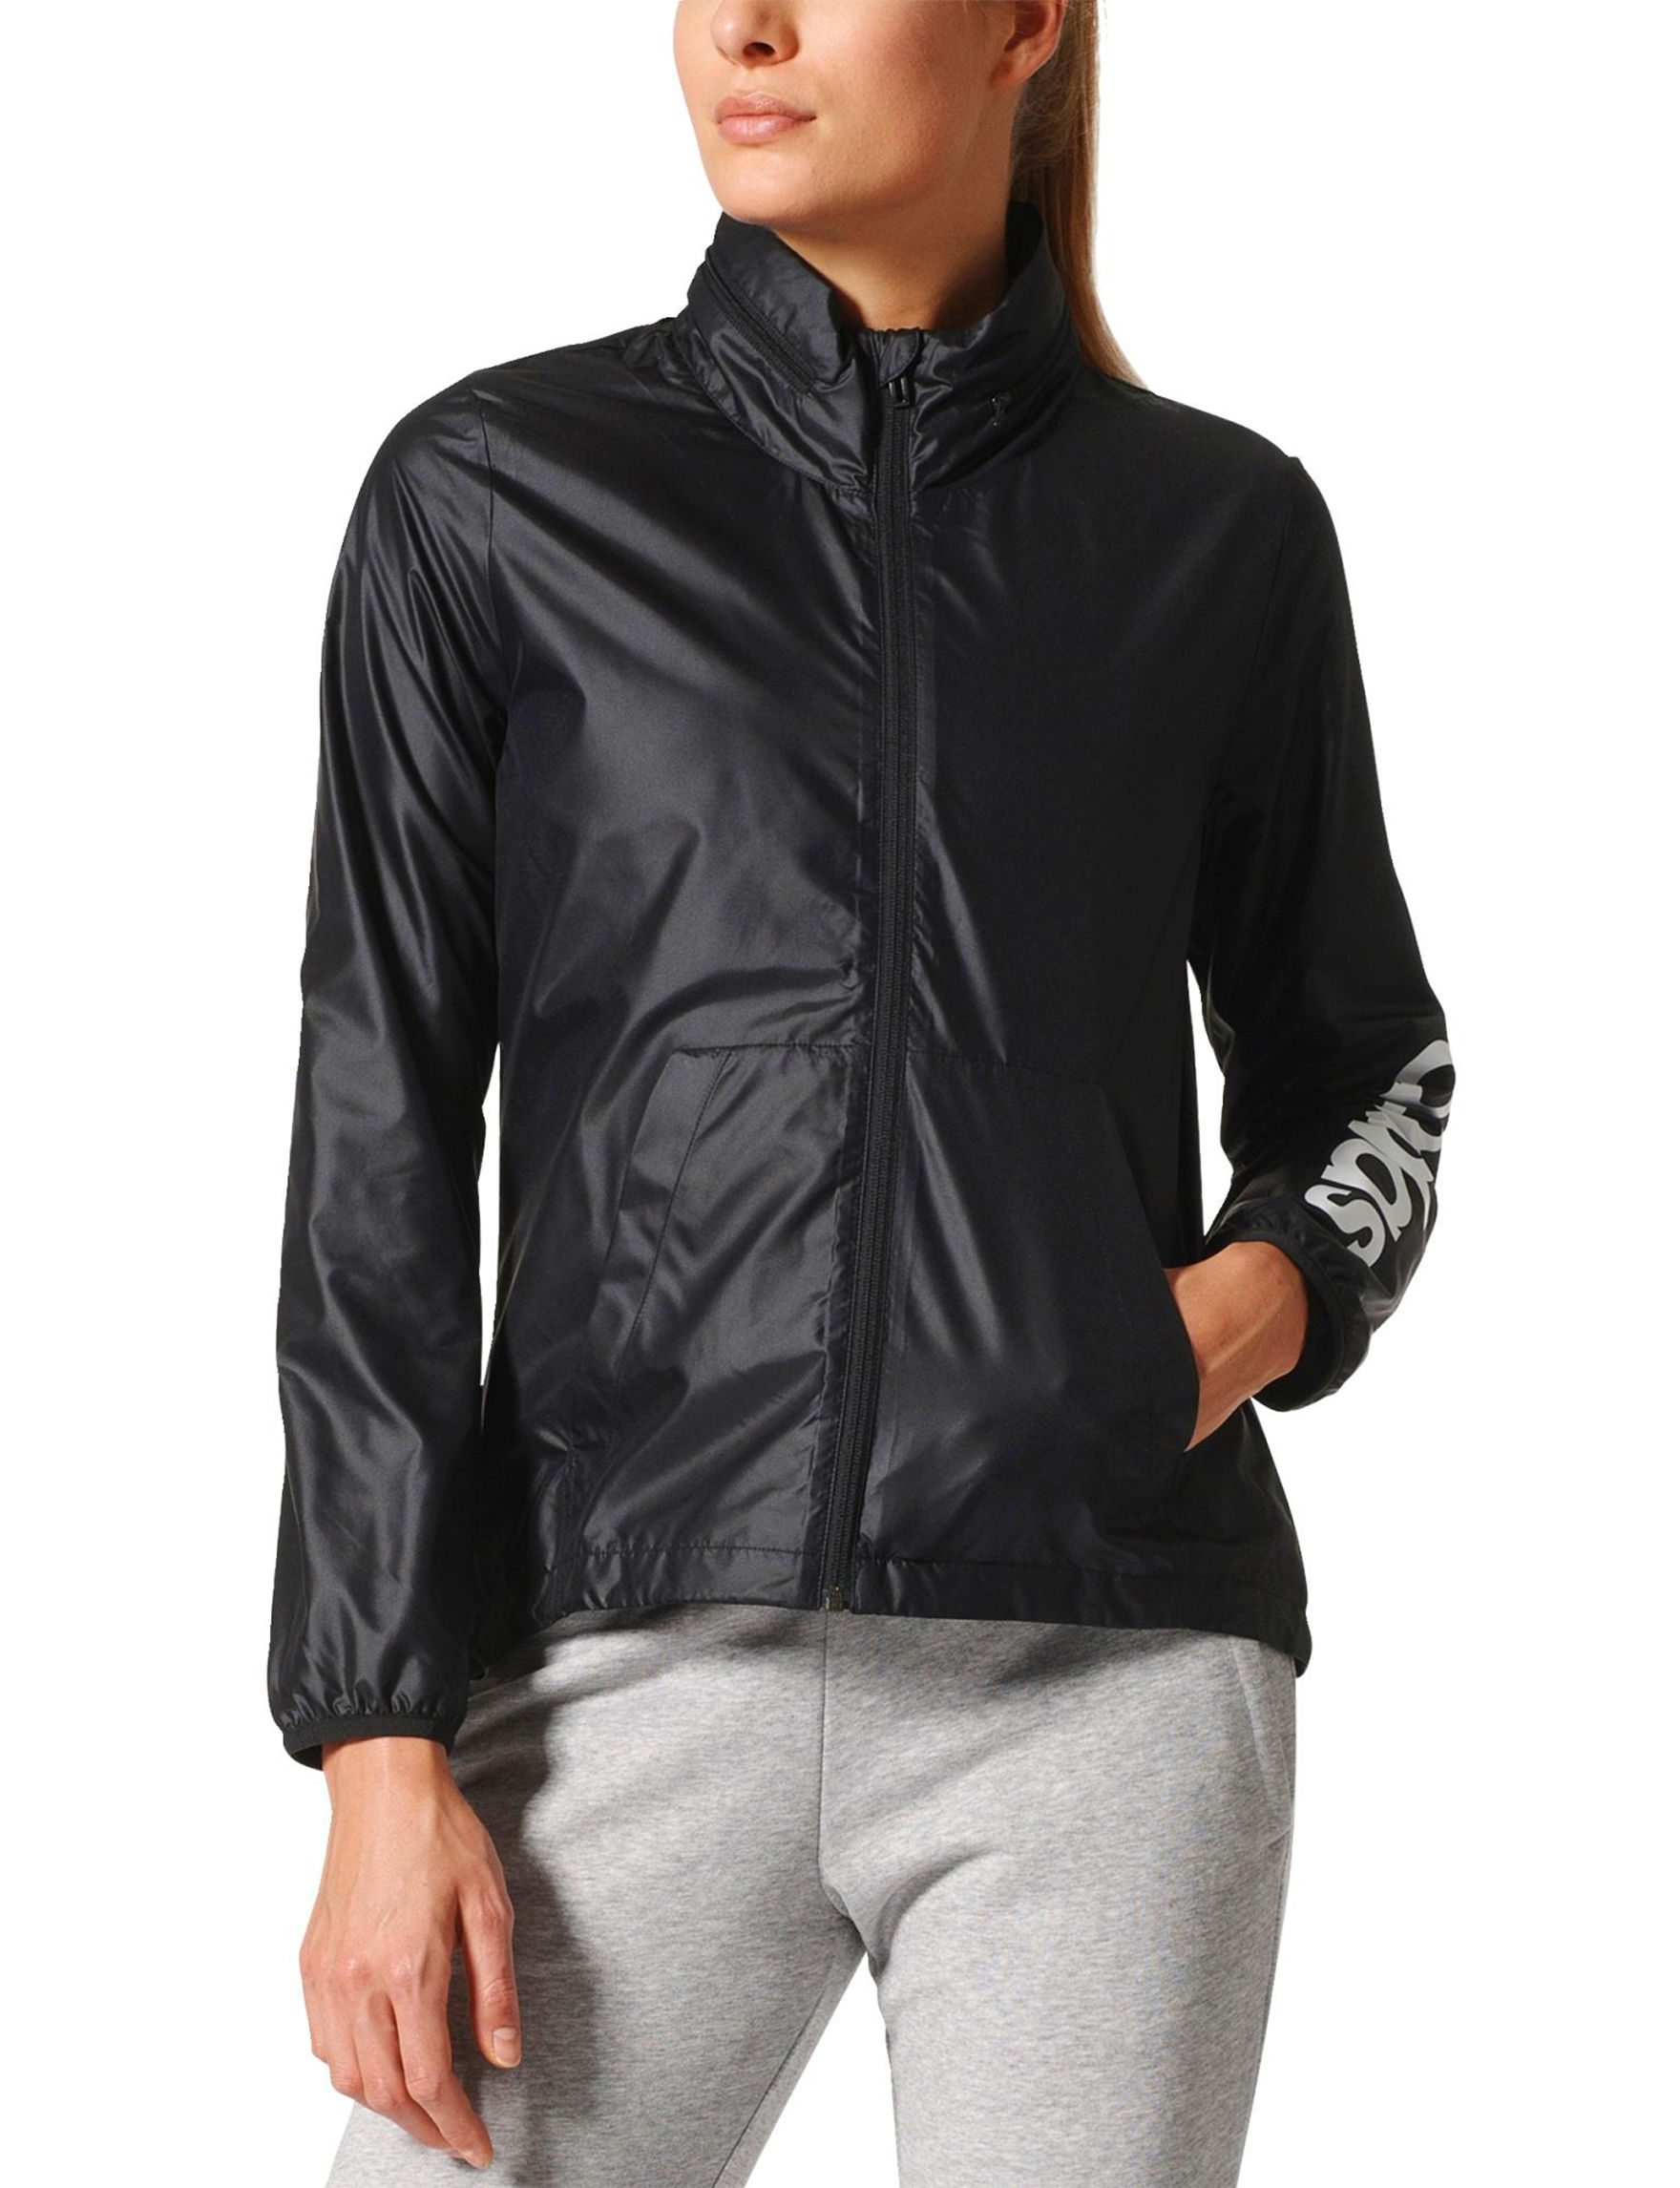 Adidas Black Lightweight Jackets & Blazers